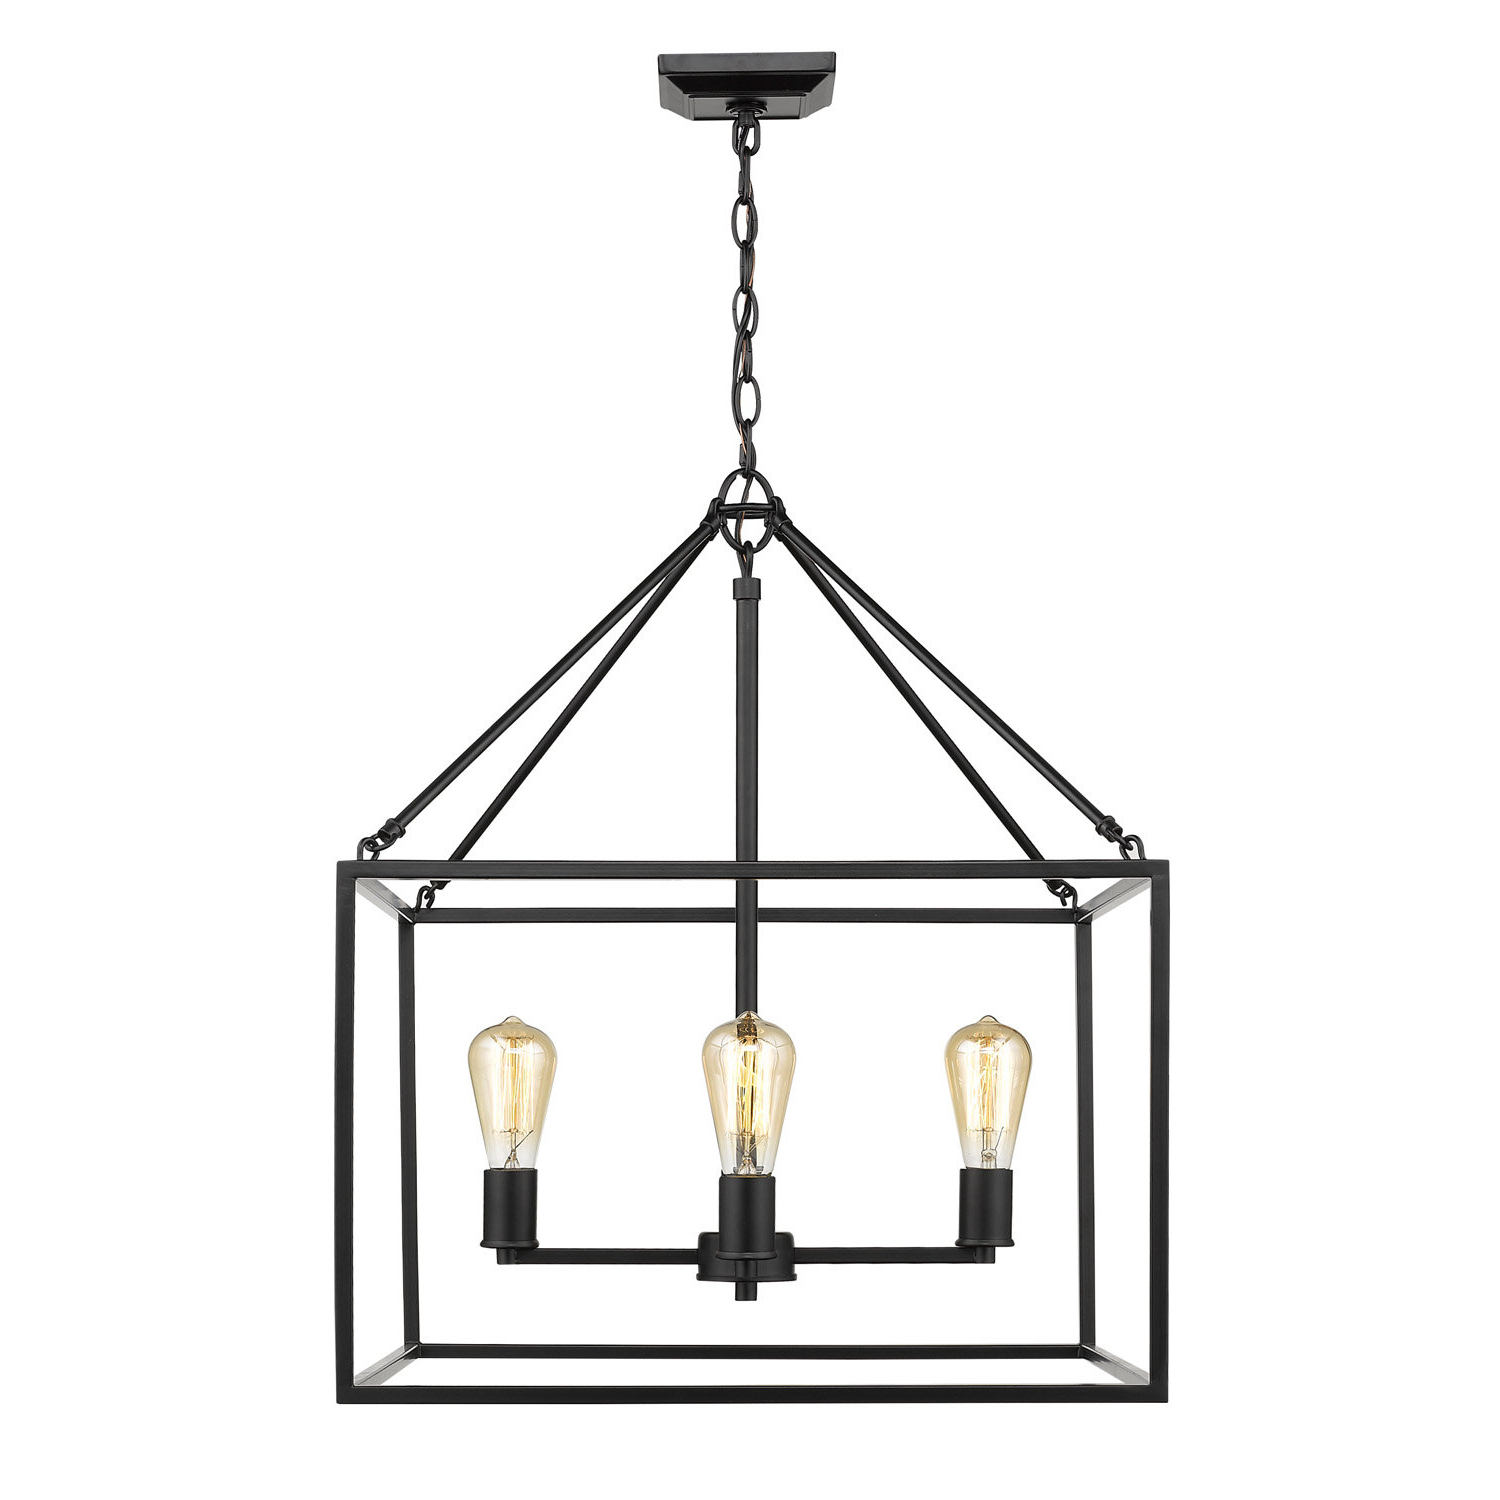 Odie 4 Light Lantern Square Pendants With Most Current Zabel 4 Light Lantern Square / Rectangle Pendant (View 14 of 25)